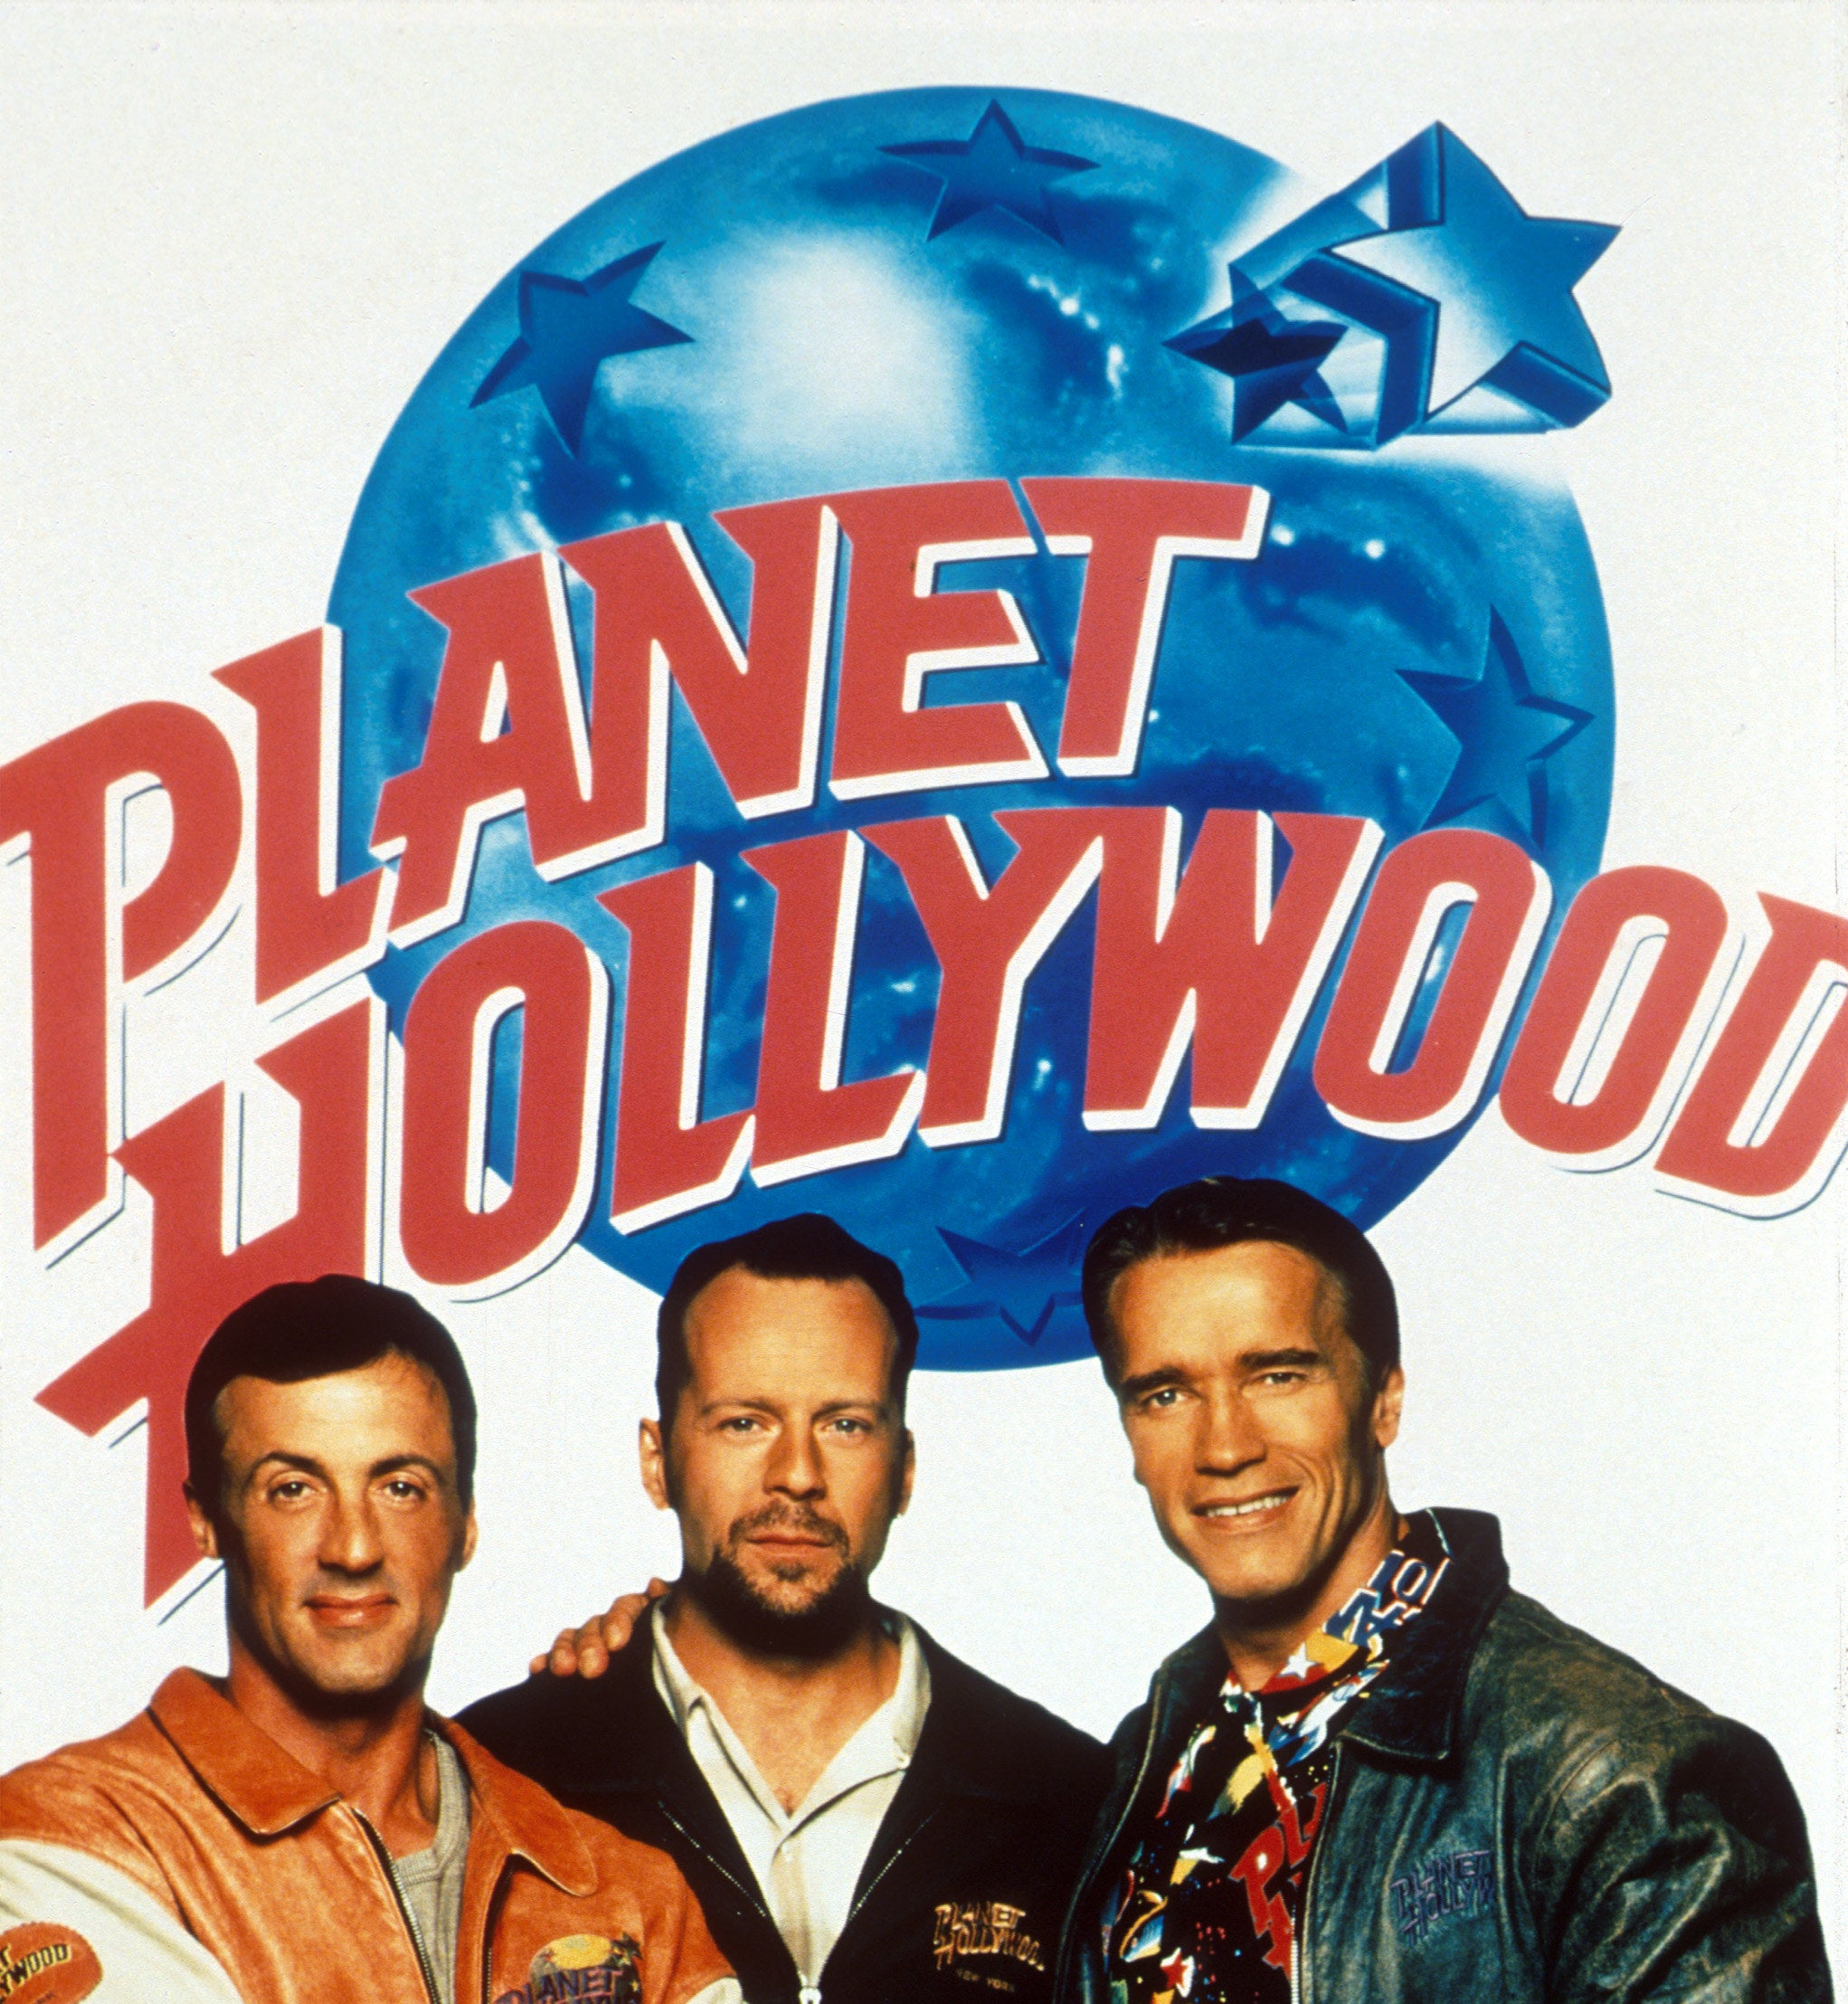 A poster for Planet Hollywood featuring Sylvester Stallone, Bruce Willis, and Arnold Schwarzenegger